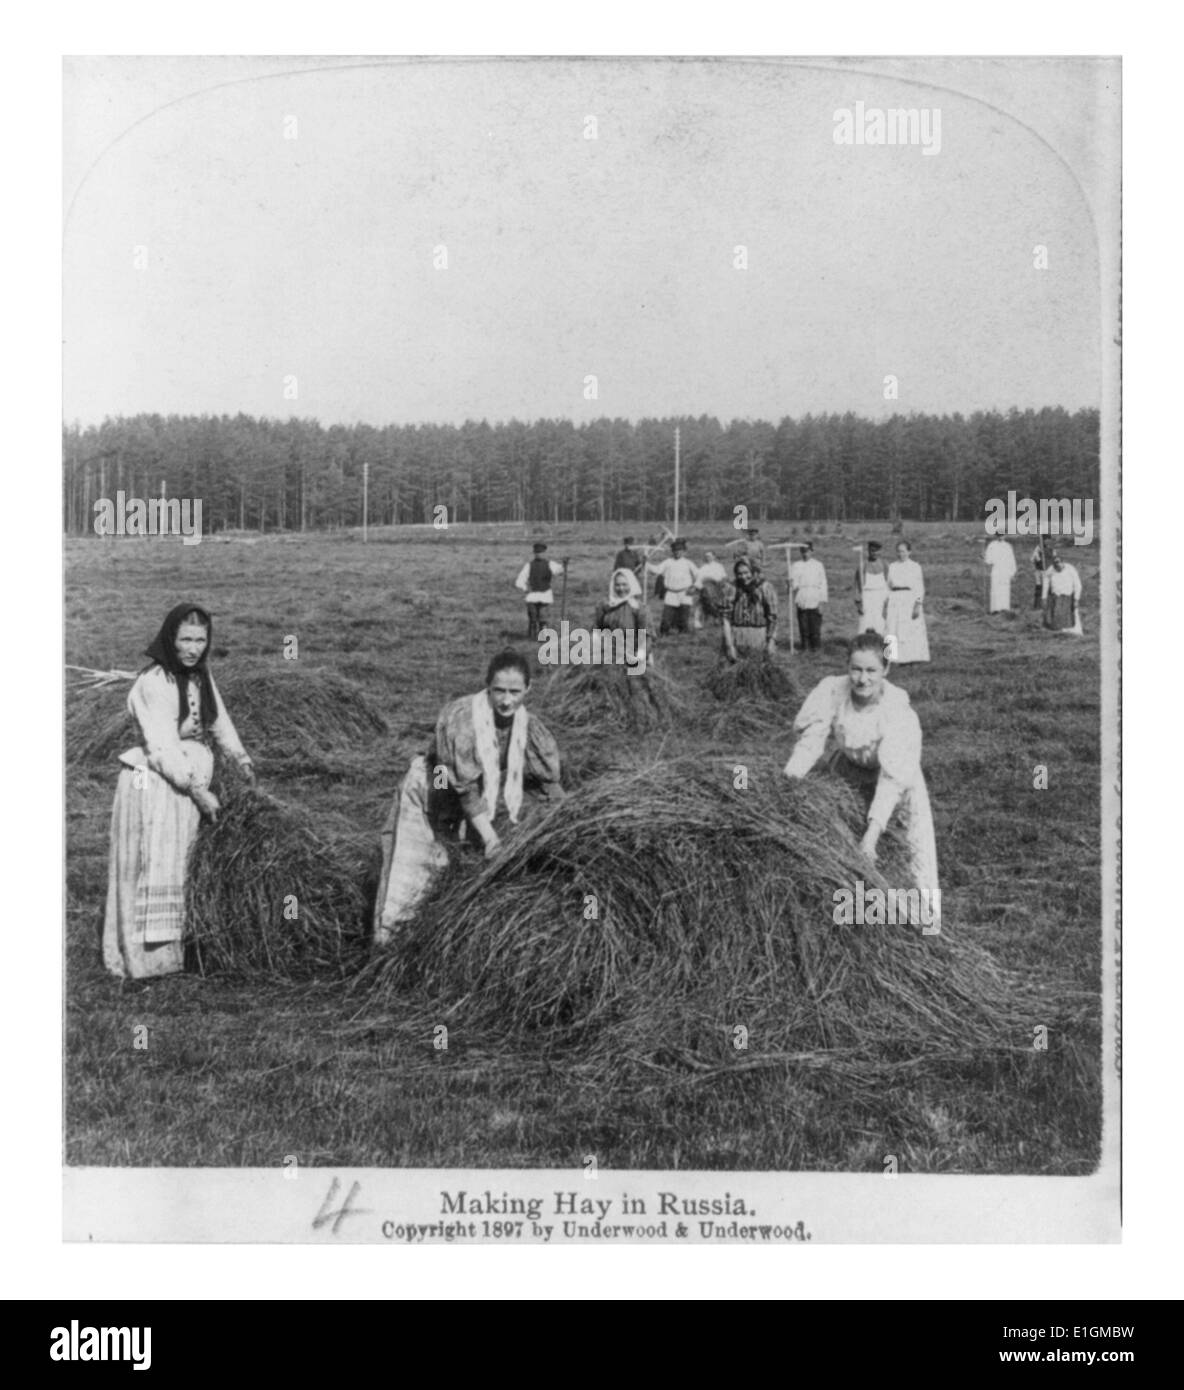 Photographic print of a group of men and women making hay in Russia. Dated 1897 - Stock Image